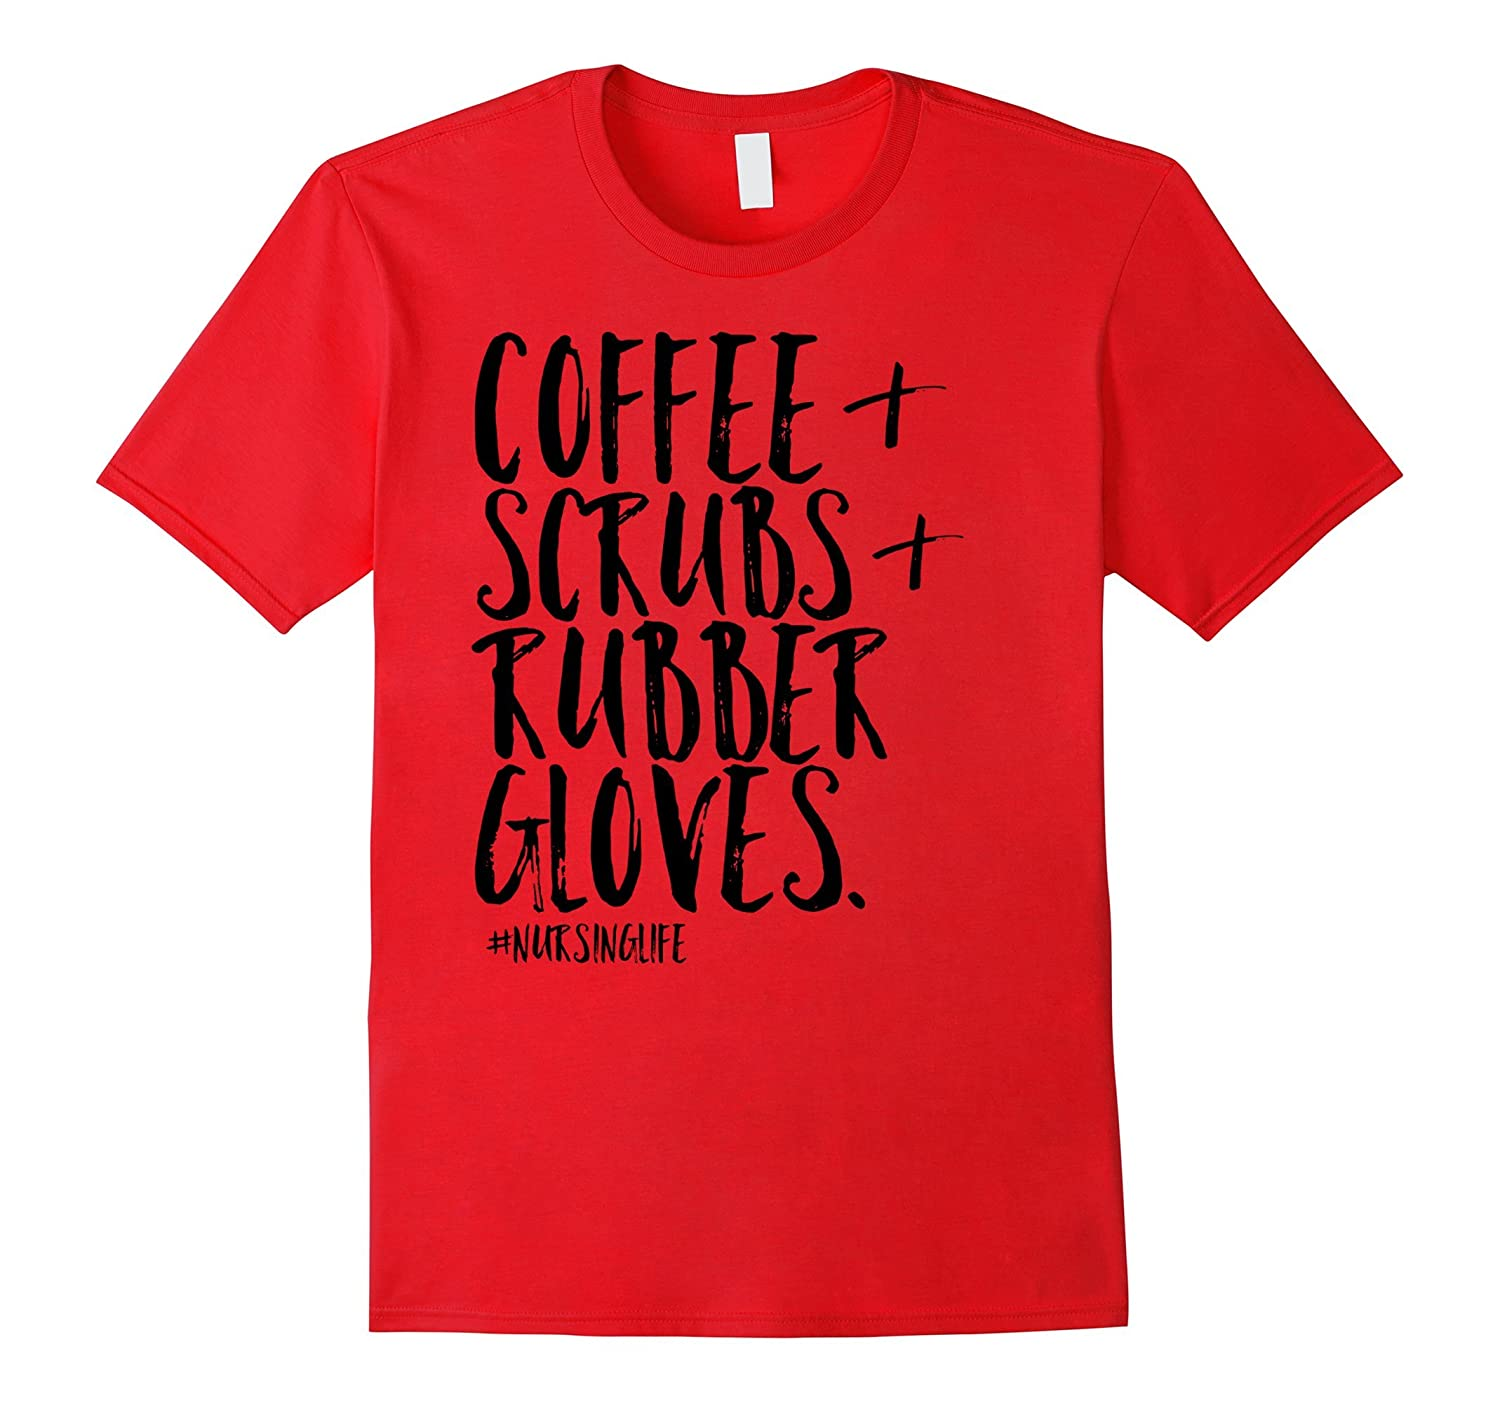 Coffee Scrubs Rubber Gloves Funny-Teechatpro